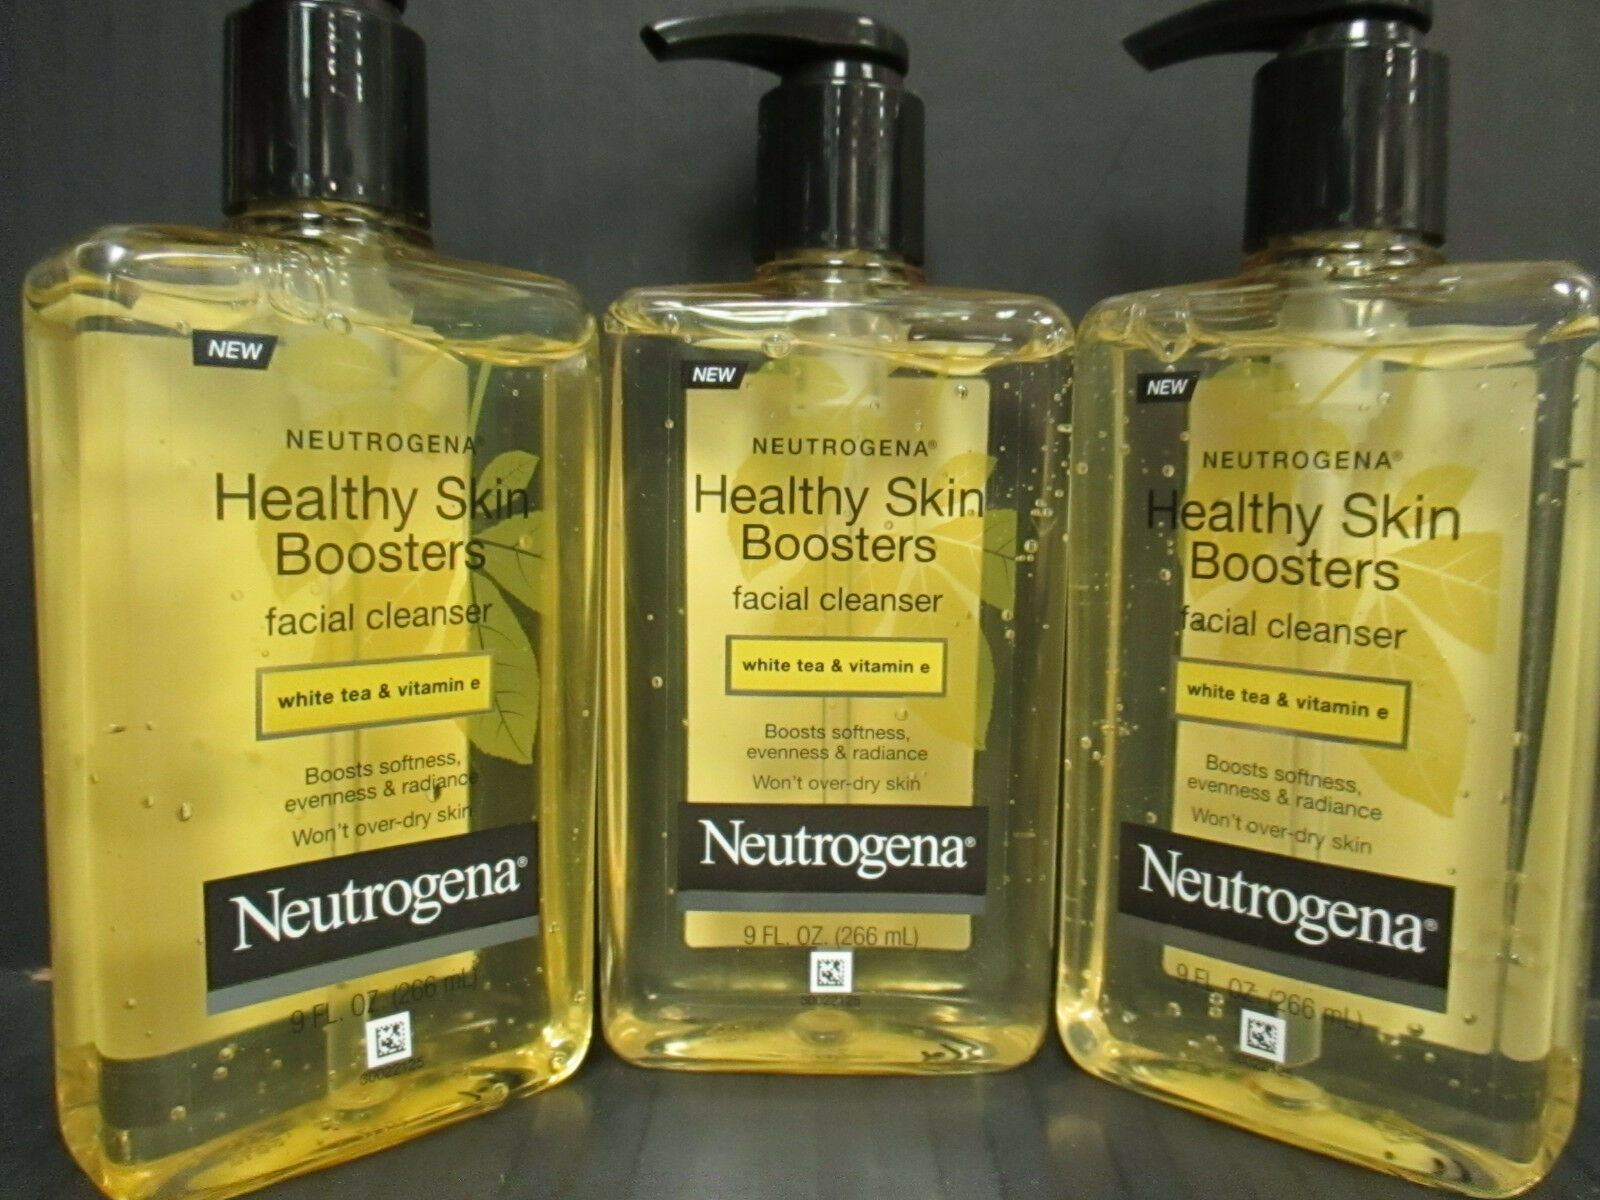 (3) Neutrogena-Healthy Skin Boosters - Facial Cleanser - Exp: 1/18 - Rc 277 • $19.99